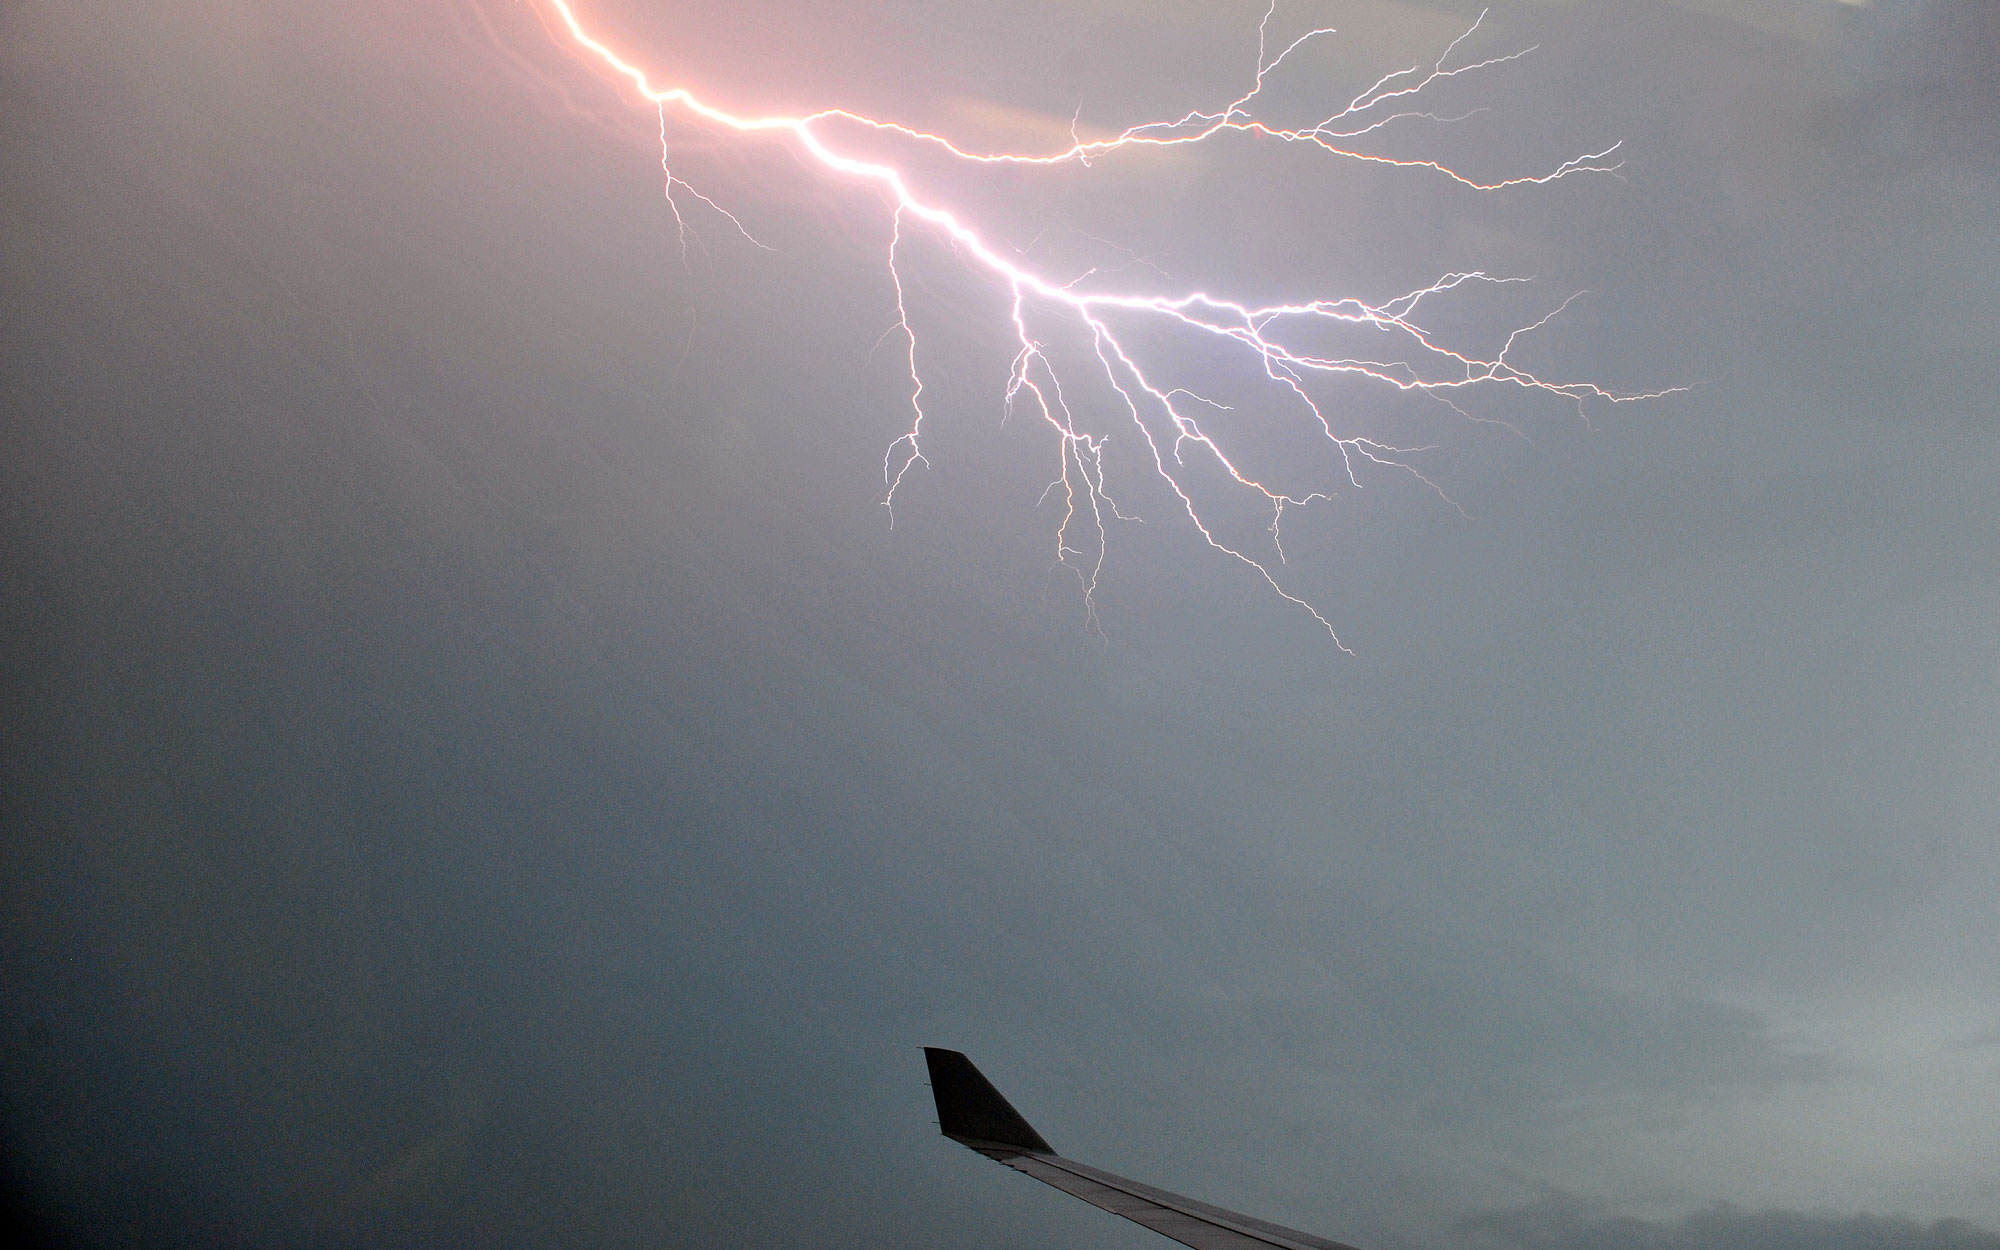 Video: Airplanes Being Hit By Lightning